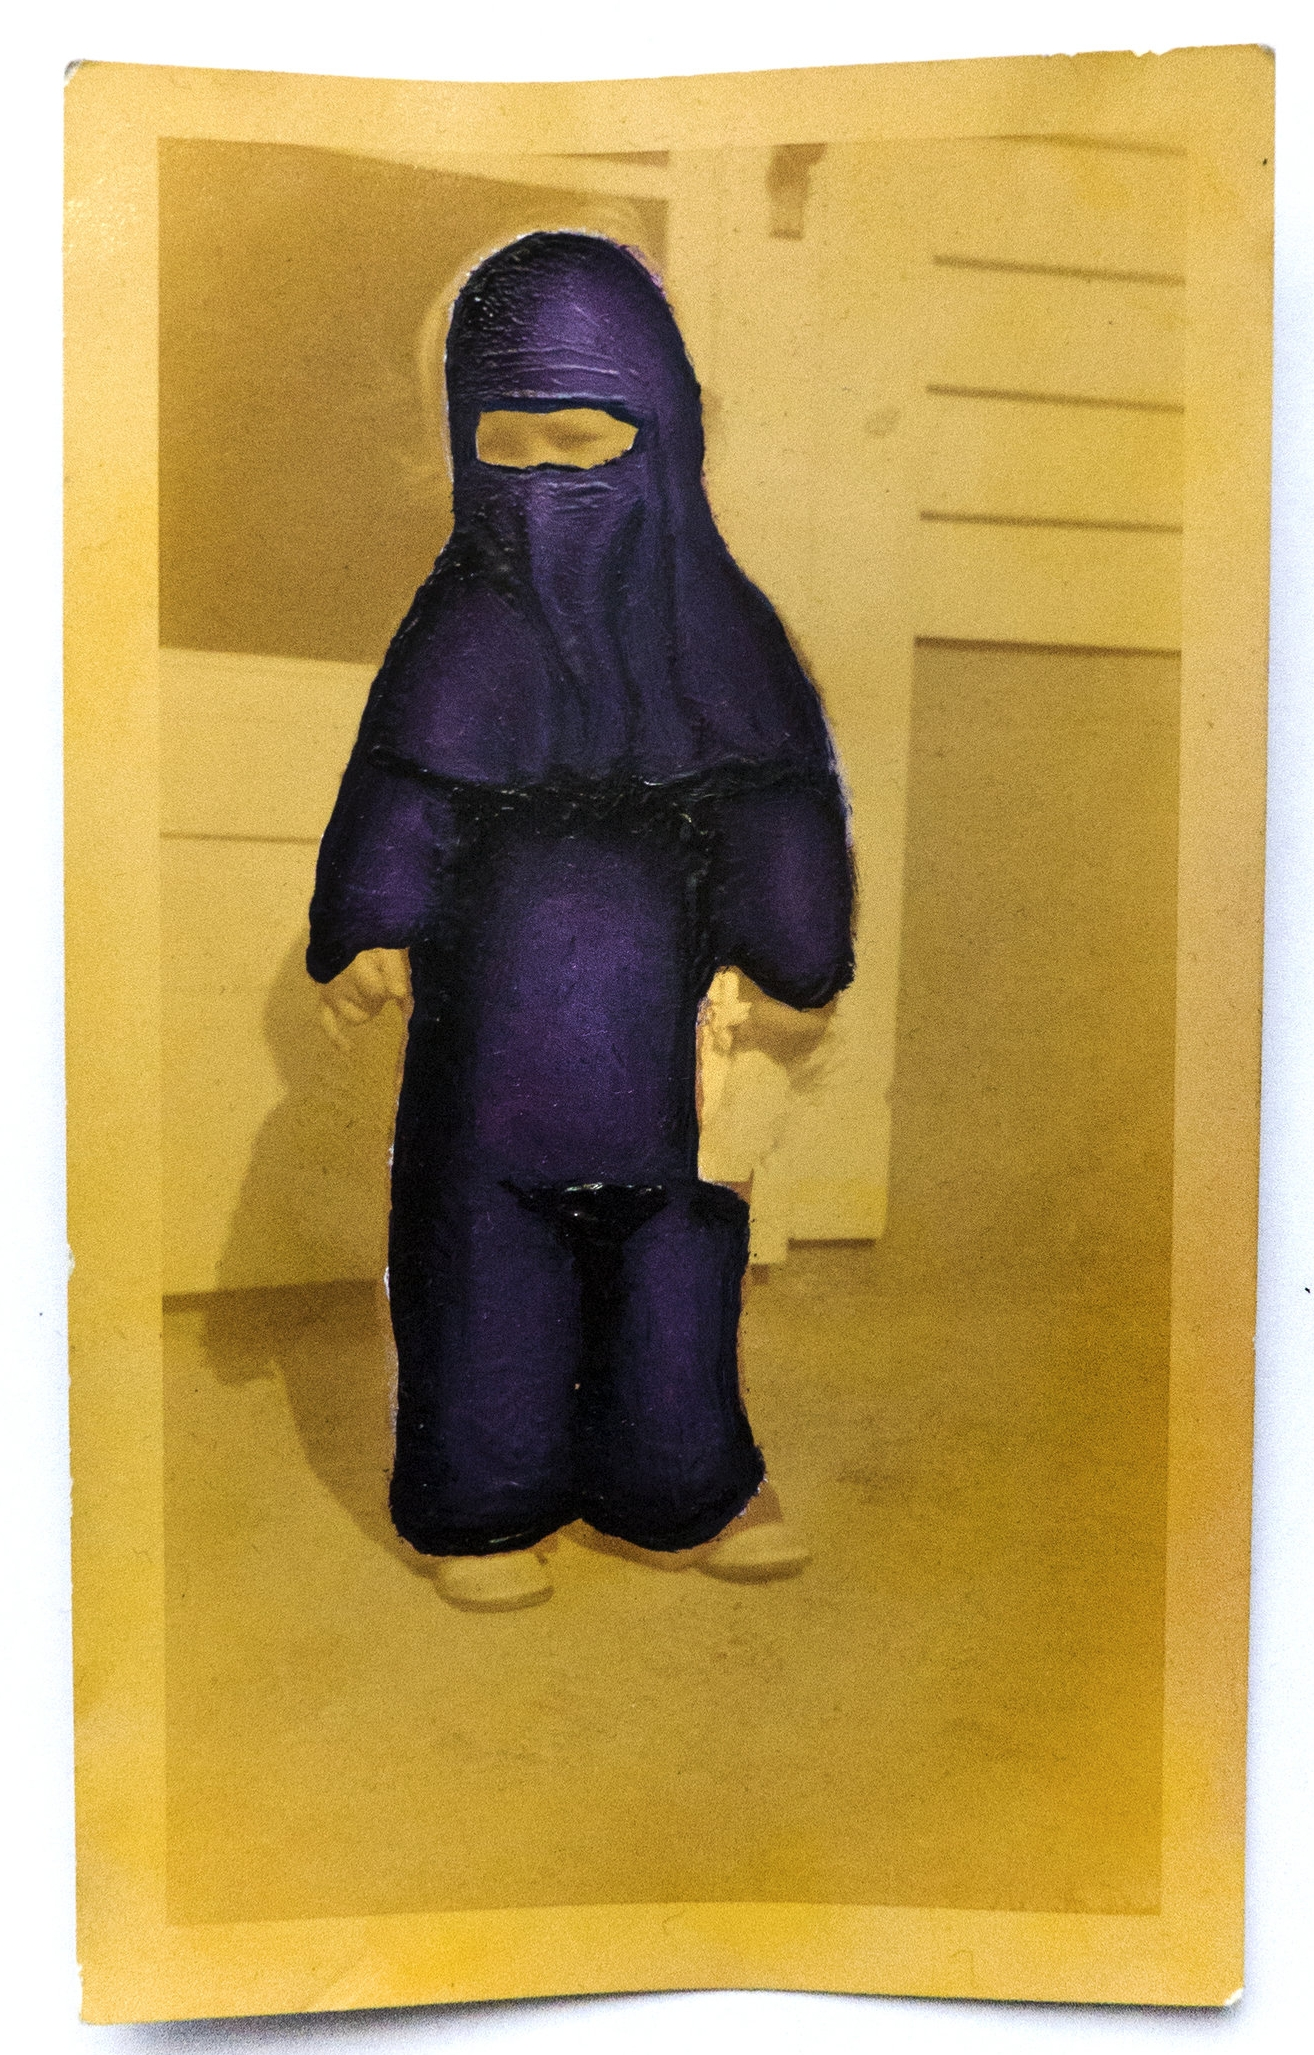 - |BABY'S FIRST BURKA| MASKED MEMORIESoil on vintage photograph